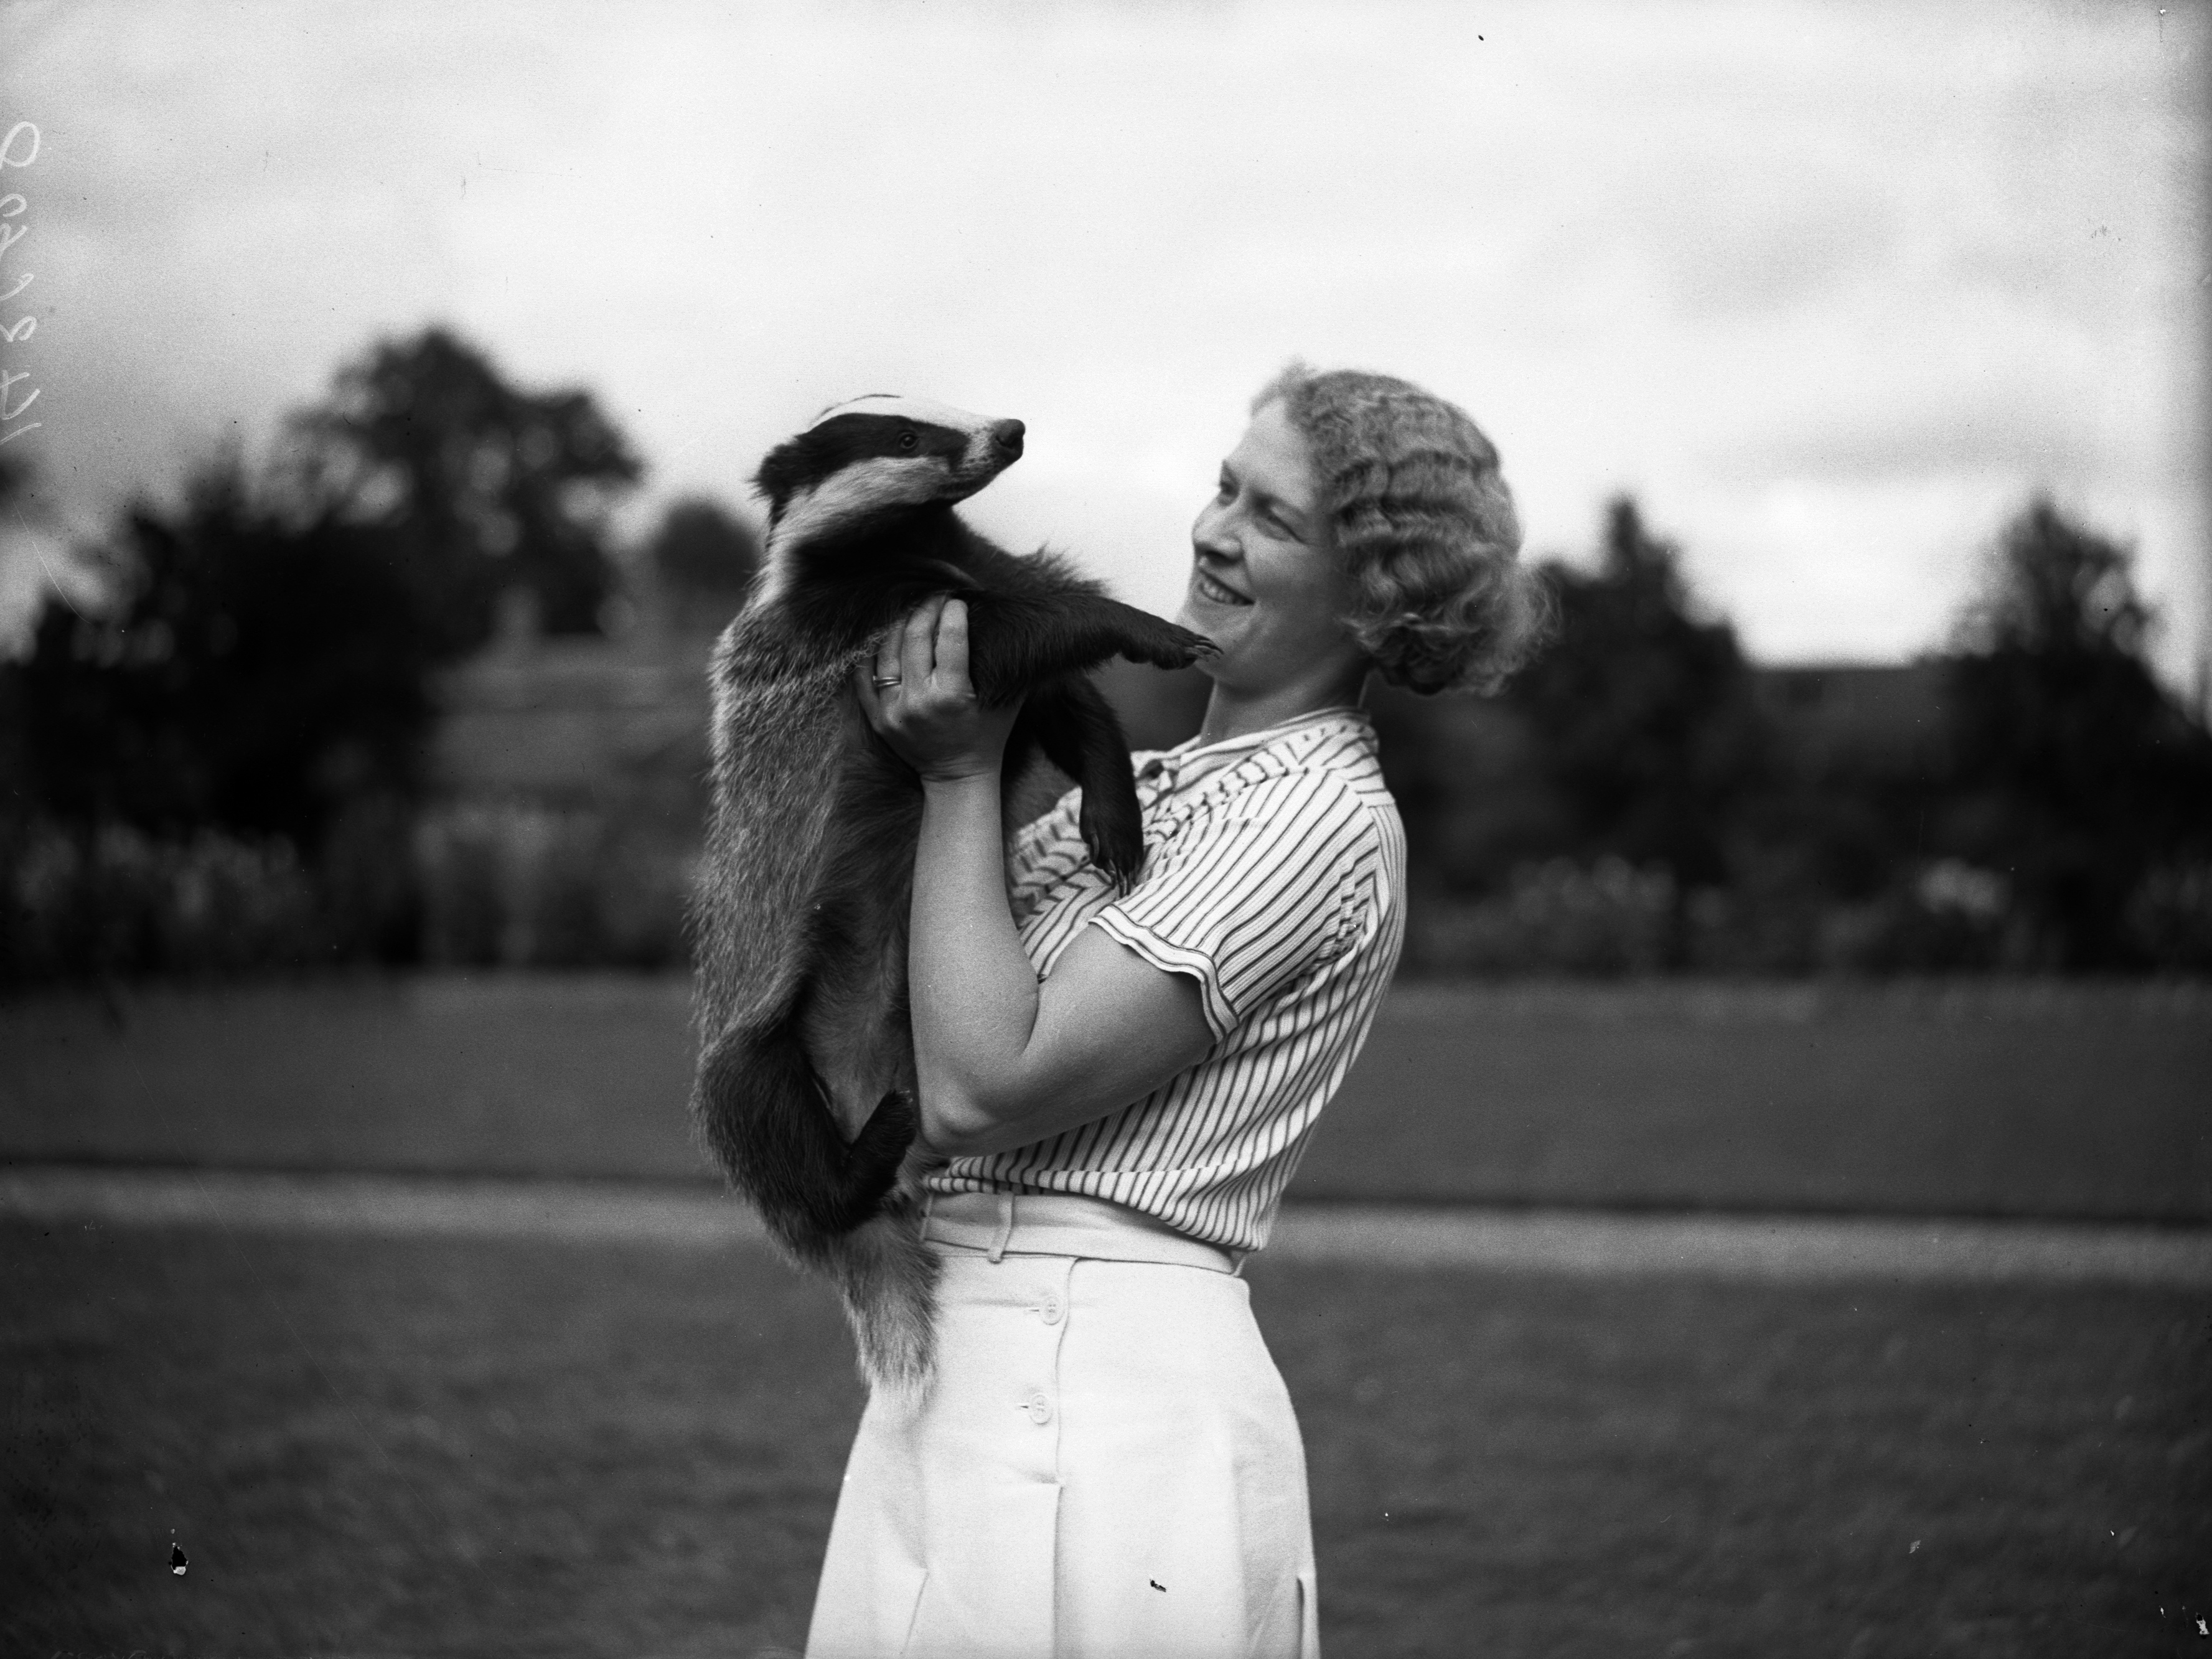 Mrs Philip Dee in 1936 with her pet badger at her home in Hanworth, Middlesex. The badger shares a hutch with a pet fox, which belongs to the Tannett family who live next door to Mrs Dee.